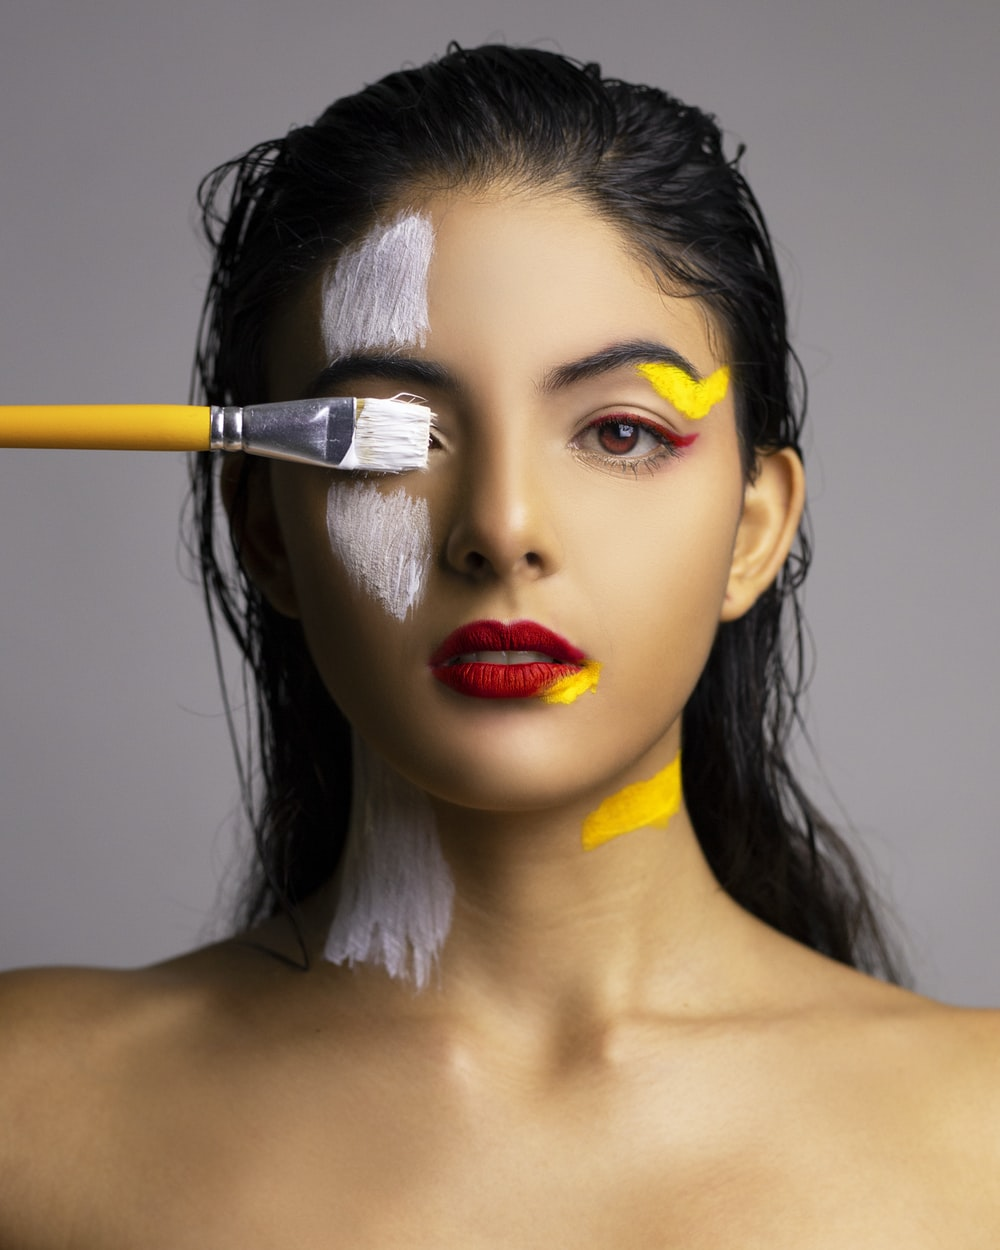 woman with red lipstick holding yellow paint brush